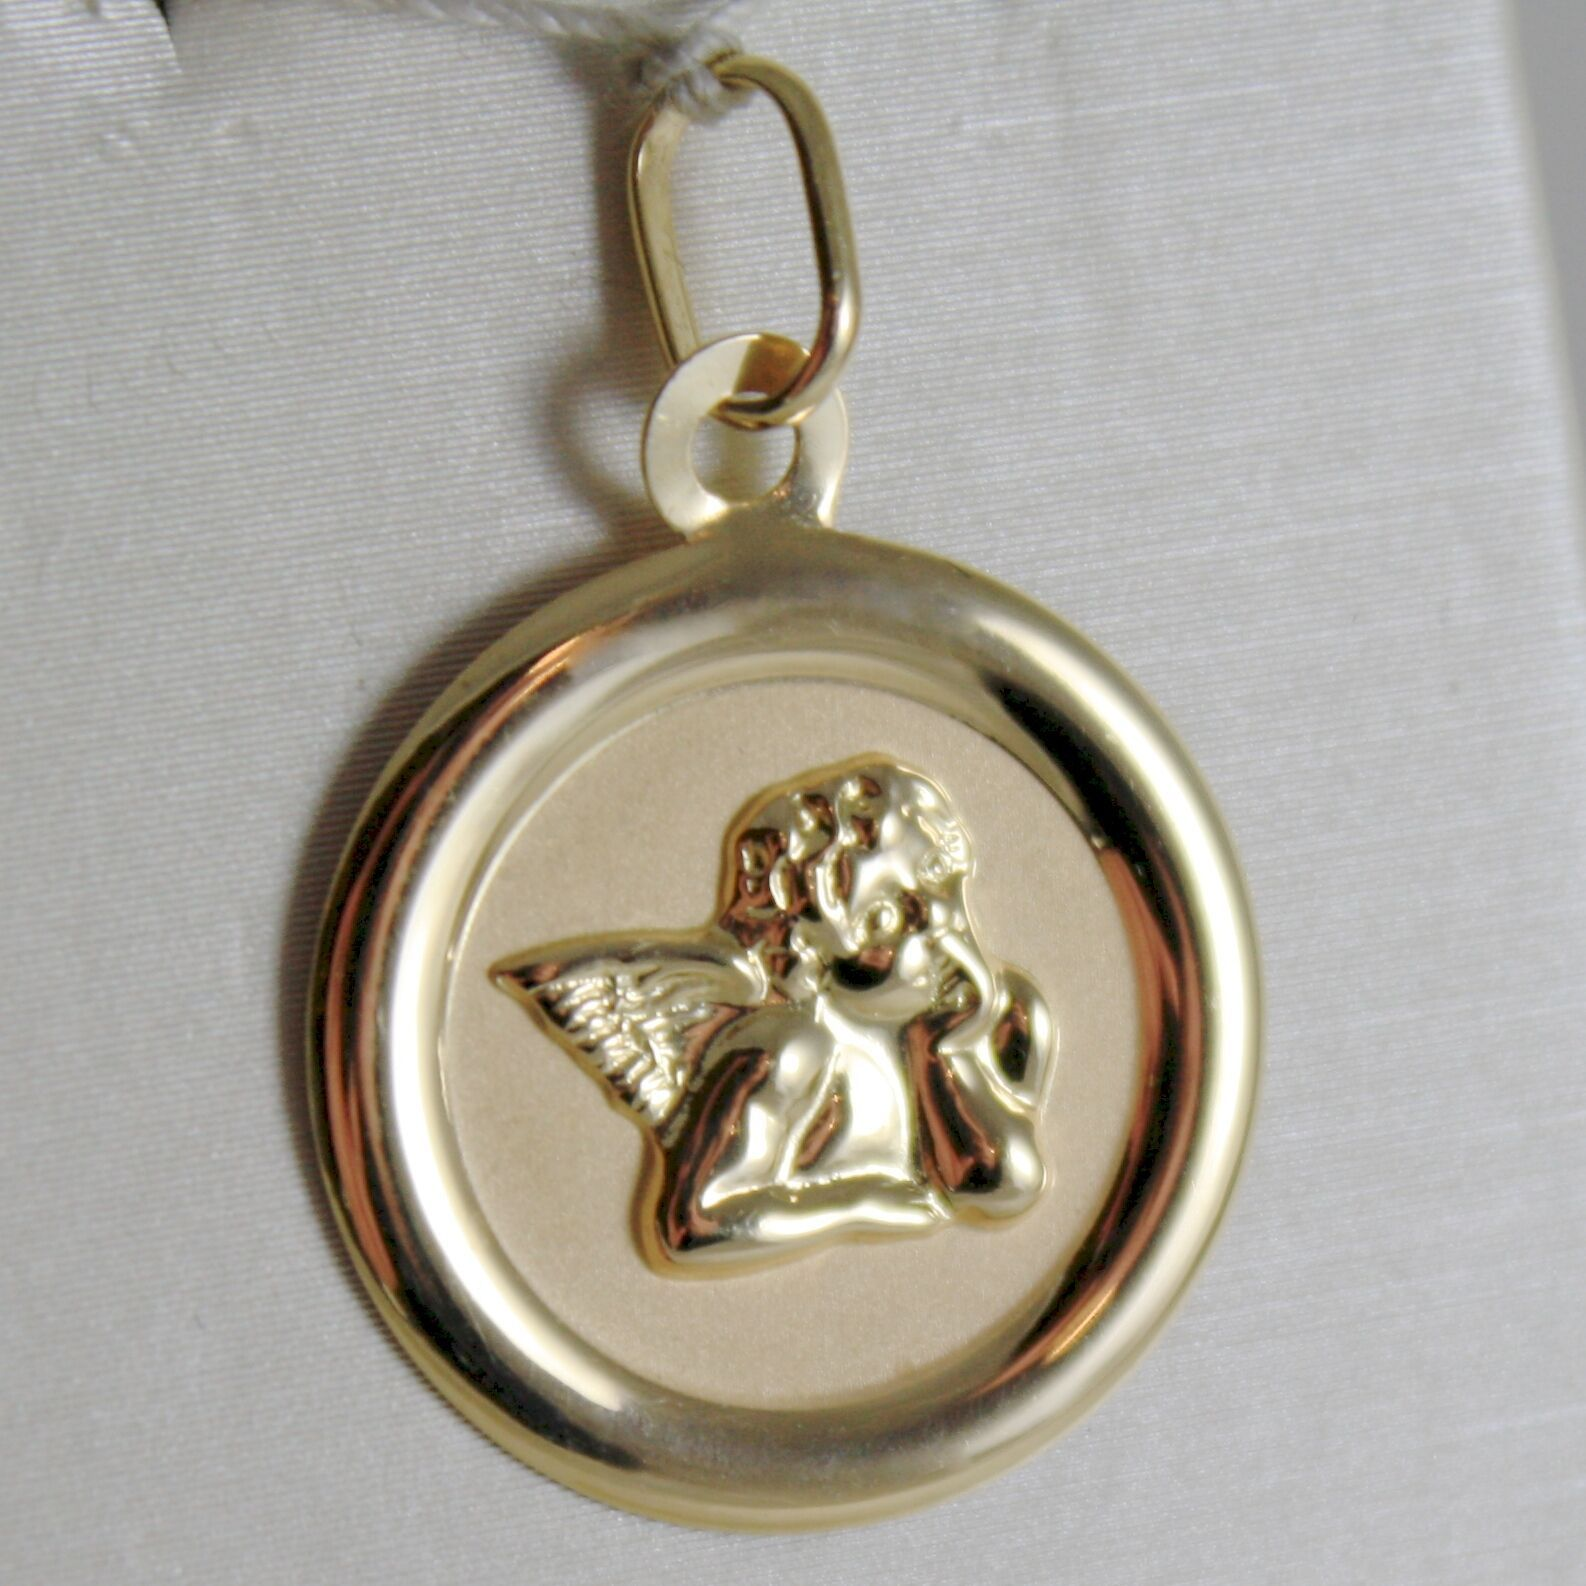 SOLID 18K YELLOW GOLD MEDAL PENDANT, GUARDIAN ANGEL LENGTH 1,06 IN MADE IN ITALY